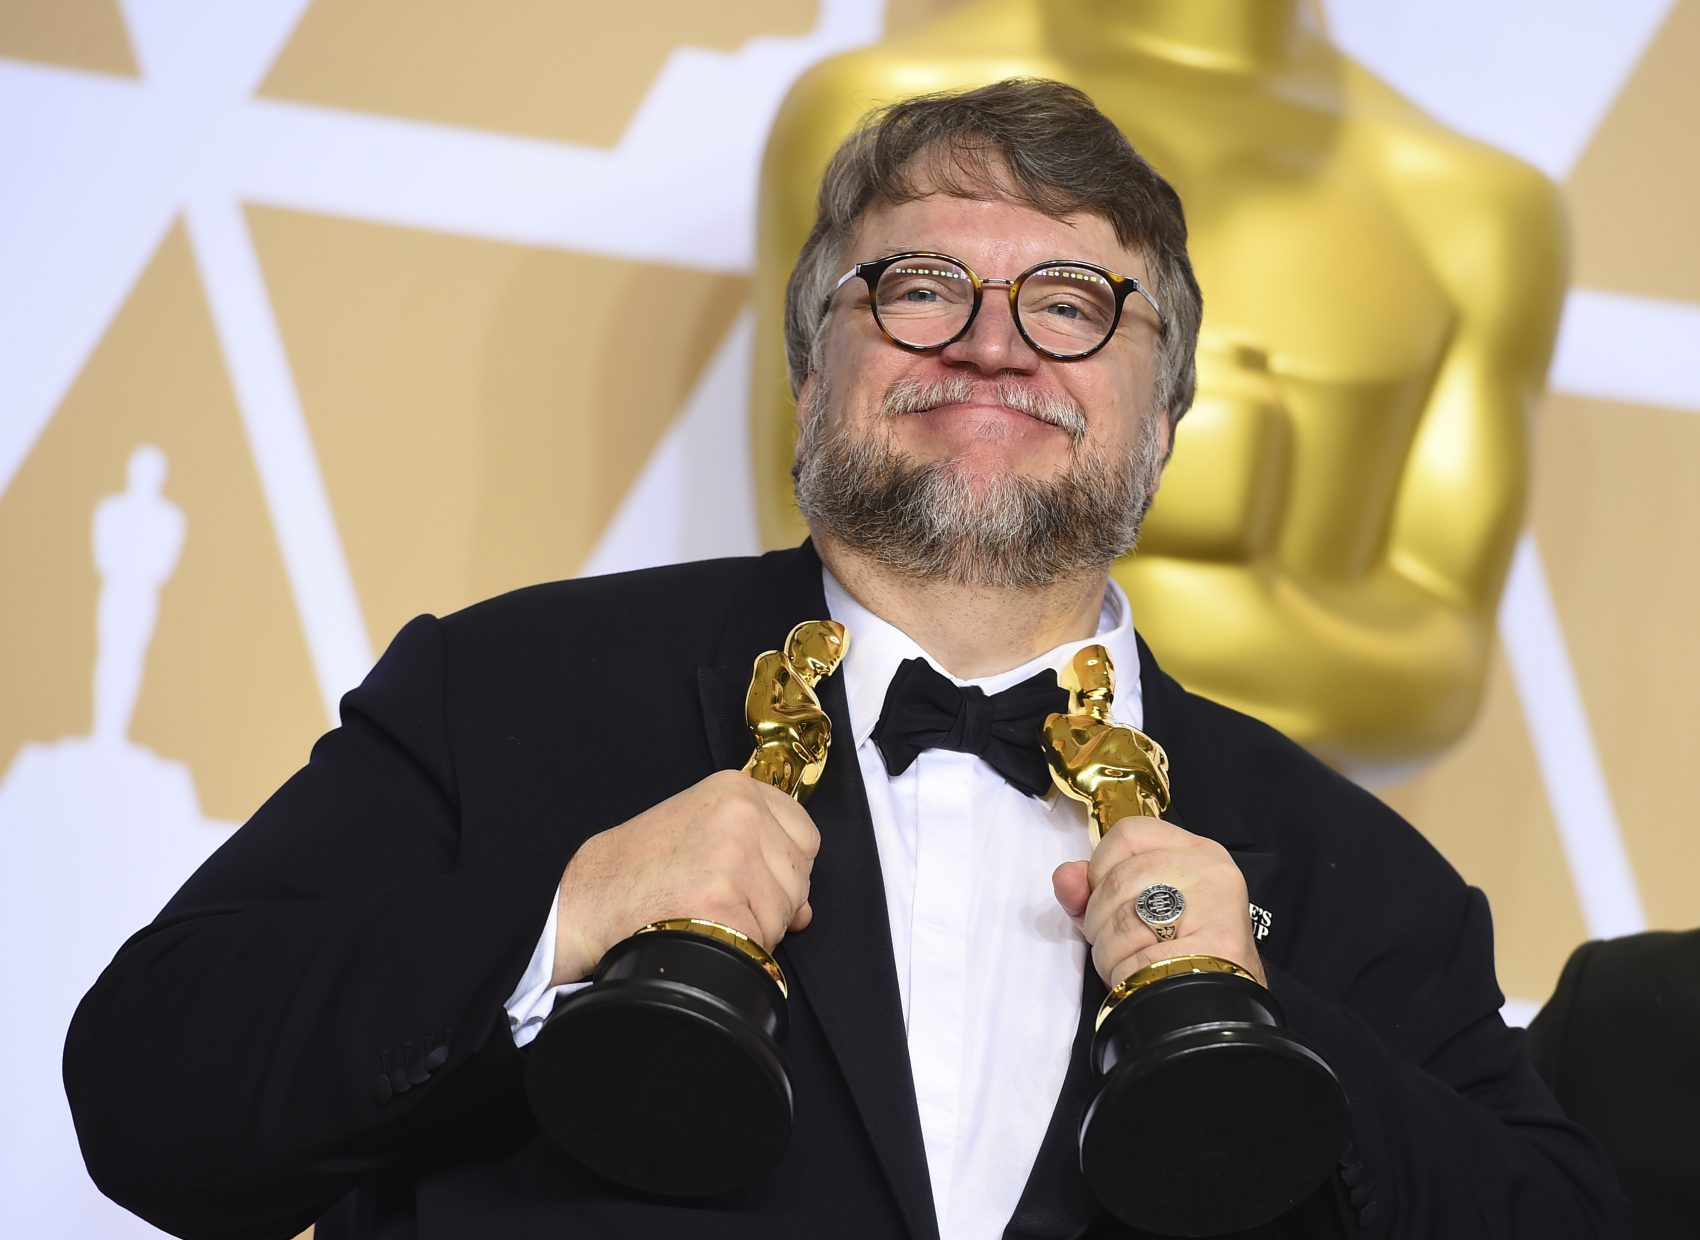 """Guillermo del Toro, winner of the awards for best director for """"The Shape of Water"""" and best picture for """"The Shape of Water"""", poses at the Oscars in LA. (Jordan Strauss/Invision/AP)"""